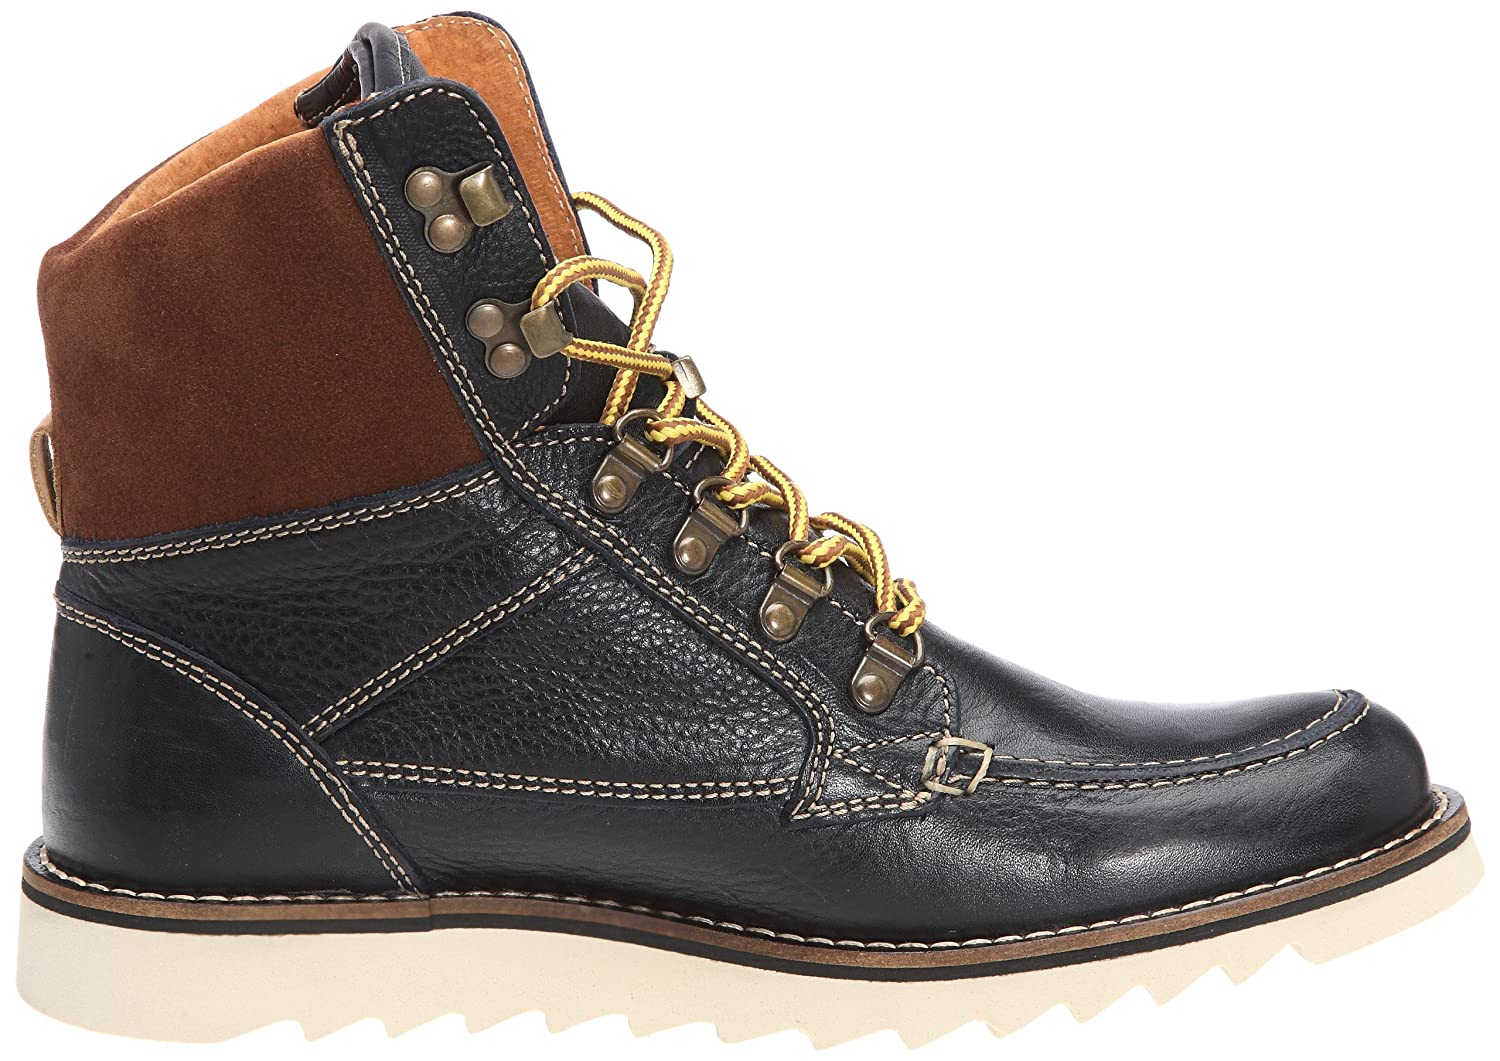 Chieftain Chaussures Sacs et Kangaroos homme Boots Bdxzq7